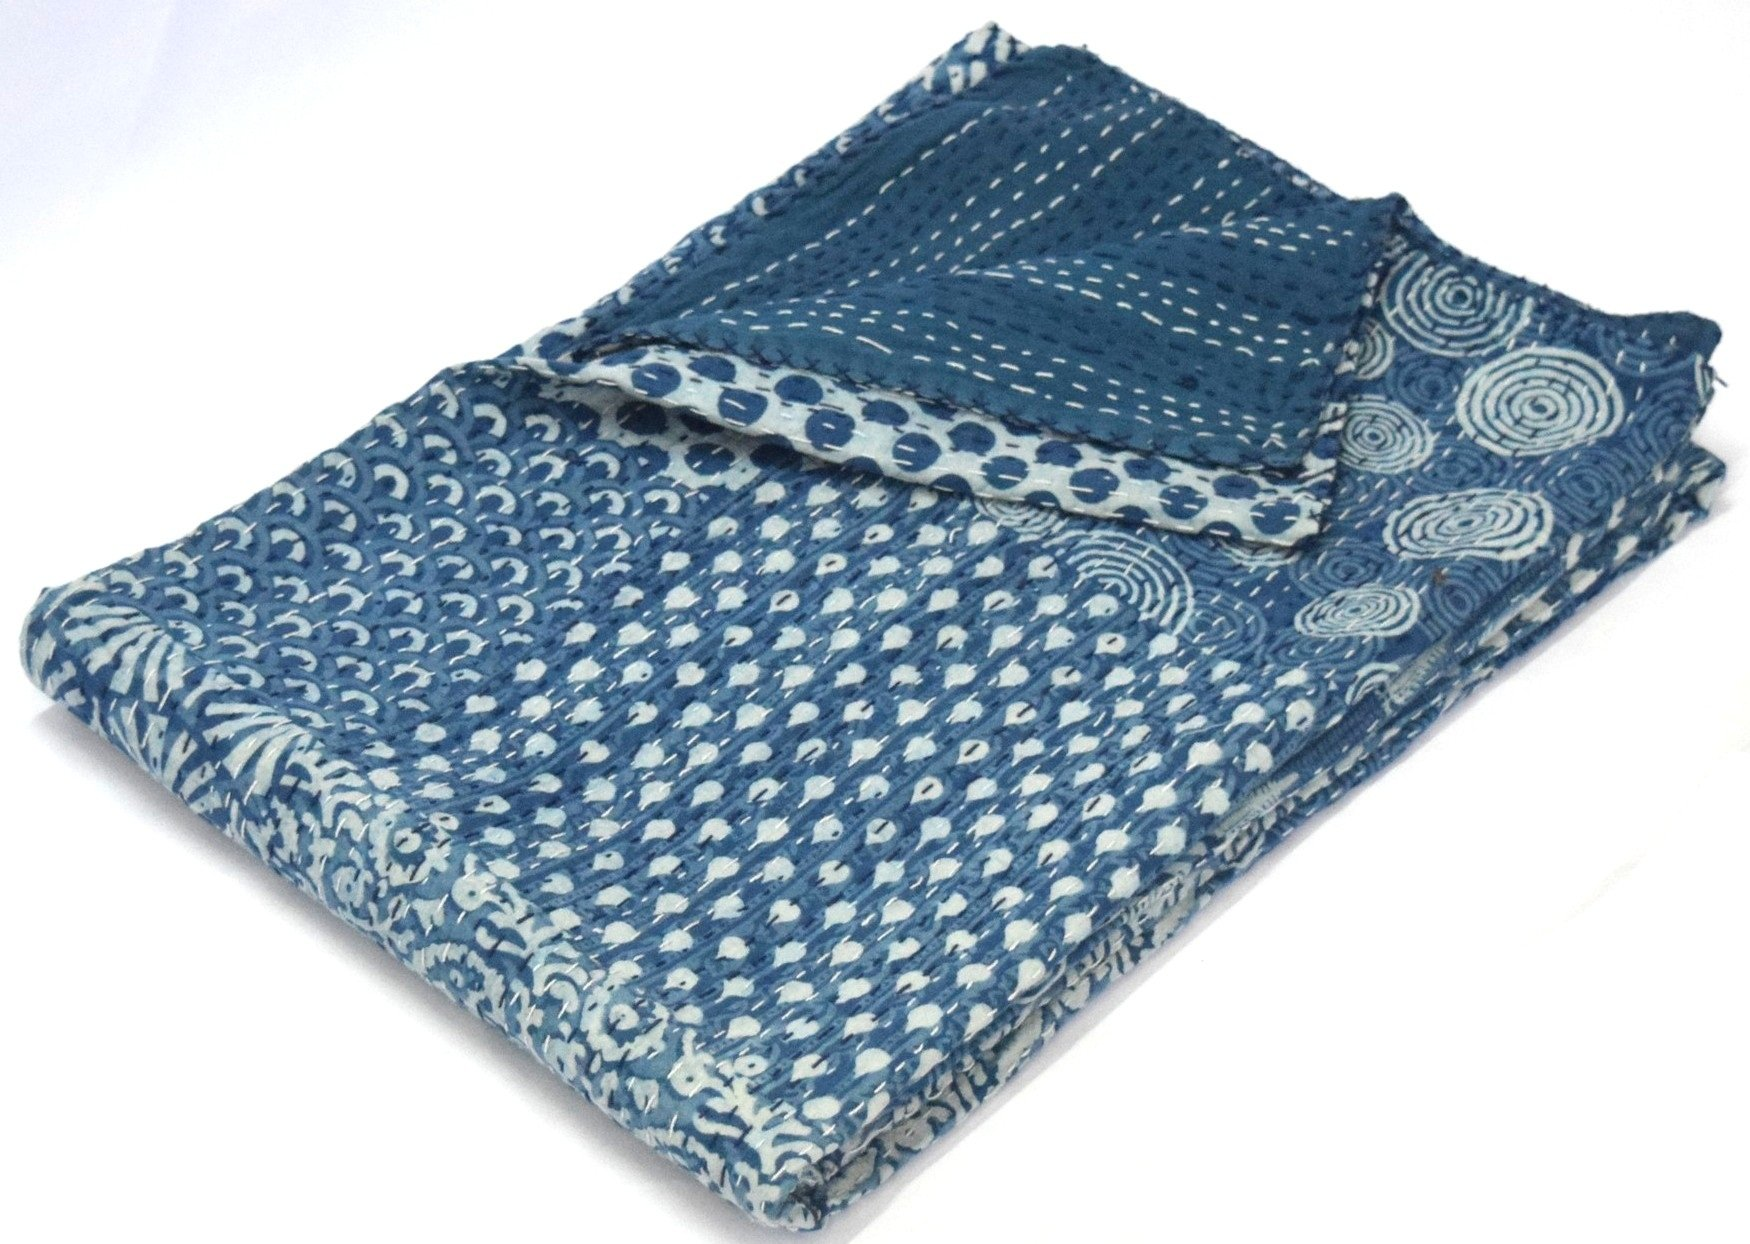 Hand Block Print Bedcover Twin Size Blue Indigo Kantha Quilt Indigo Print Bedcover Indian Kantha Quilt Block Print Bedcover Patchwork Kantha Bedcover kusum creation by kusum creation (Image #2)